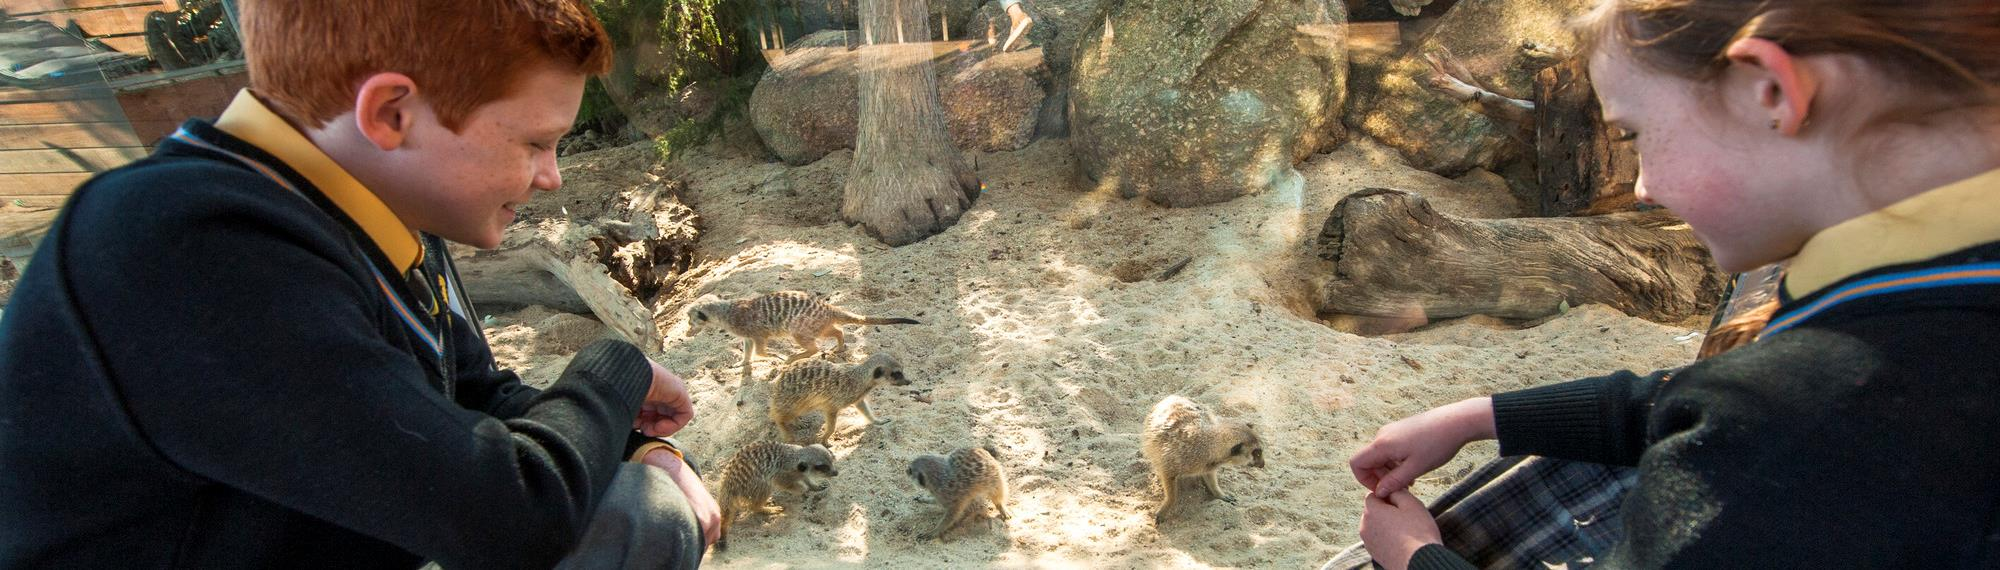 Two students watching five meerkats play in the sand in their enclosure.